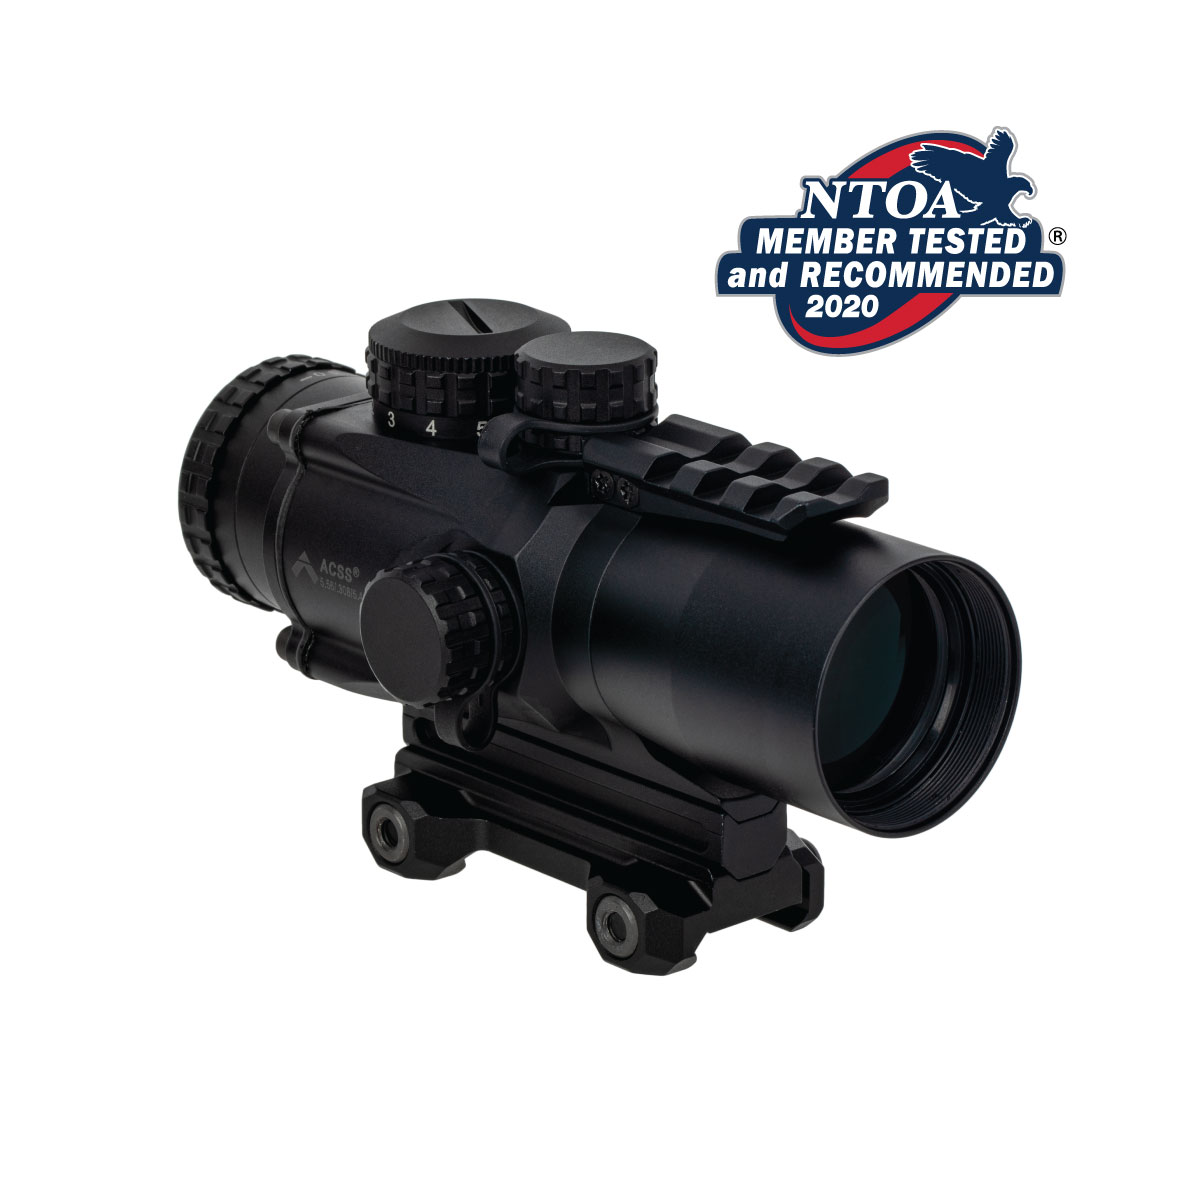 Primary Arms SLx 3x Gen 3 prism scope